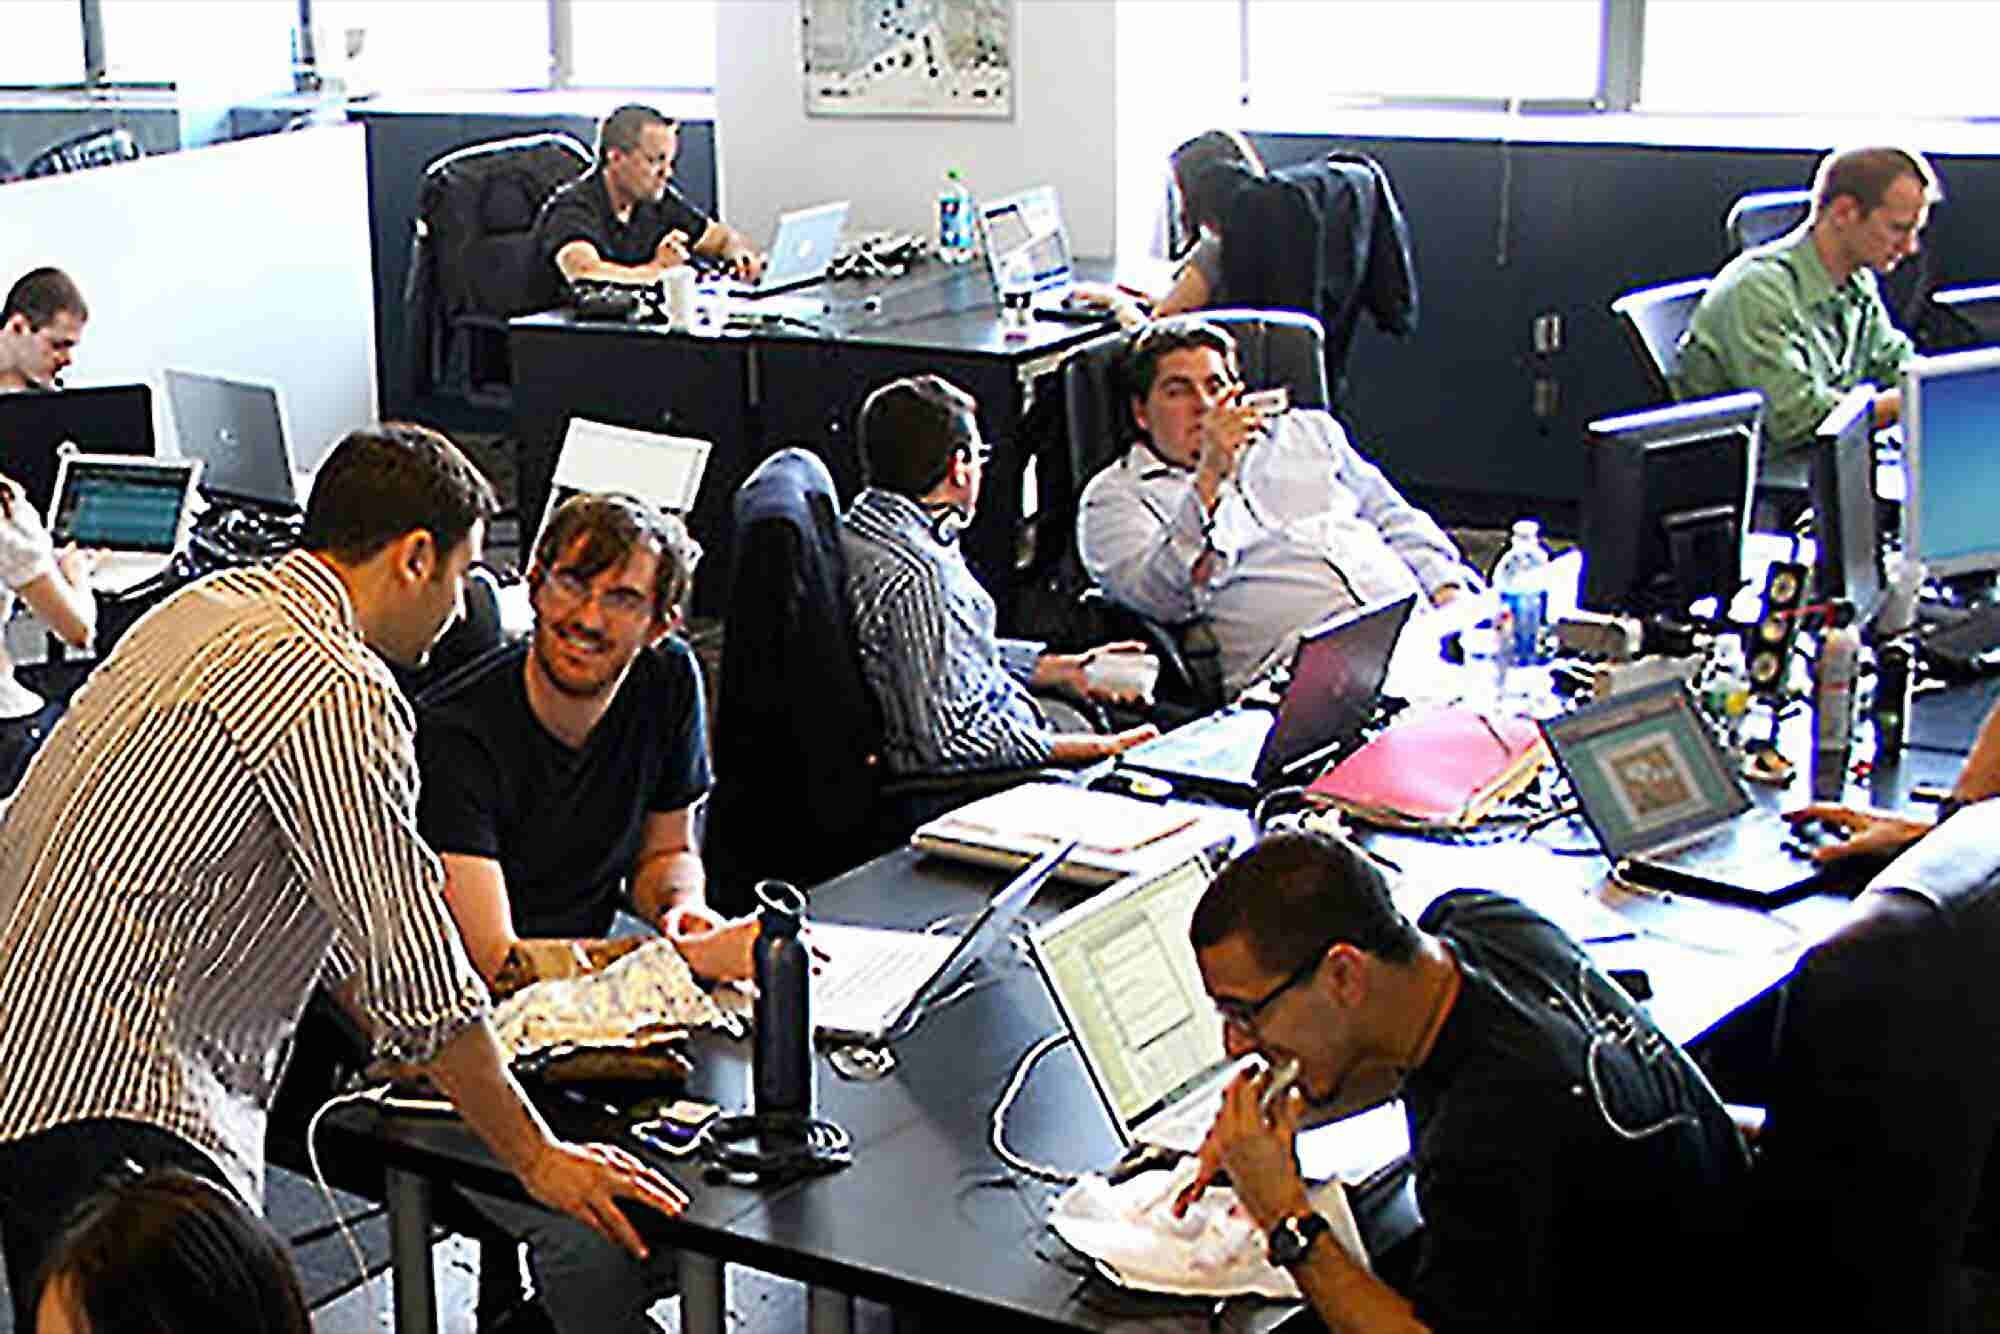 How to Find a Co-Working Space That's Right for Your Startup